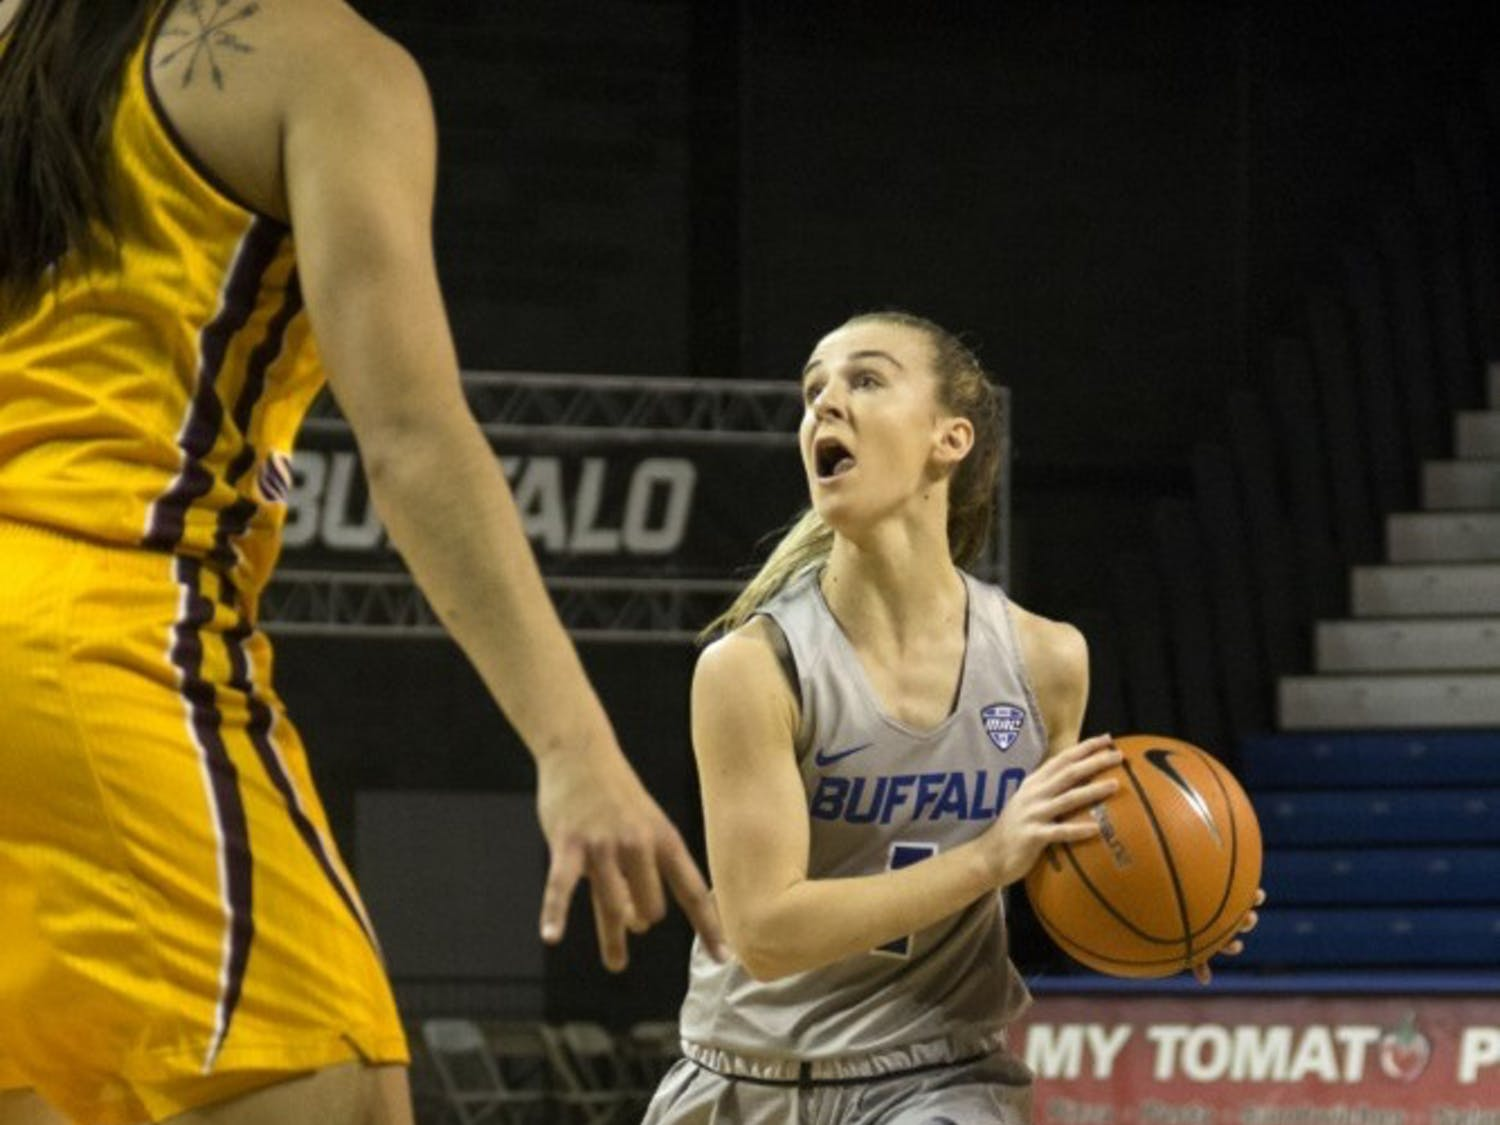 Stephanie Reid picks up her dribble. Reid has played for two professional teams since leaving UB, both in her native country of Australia.